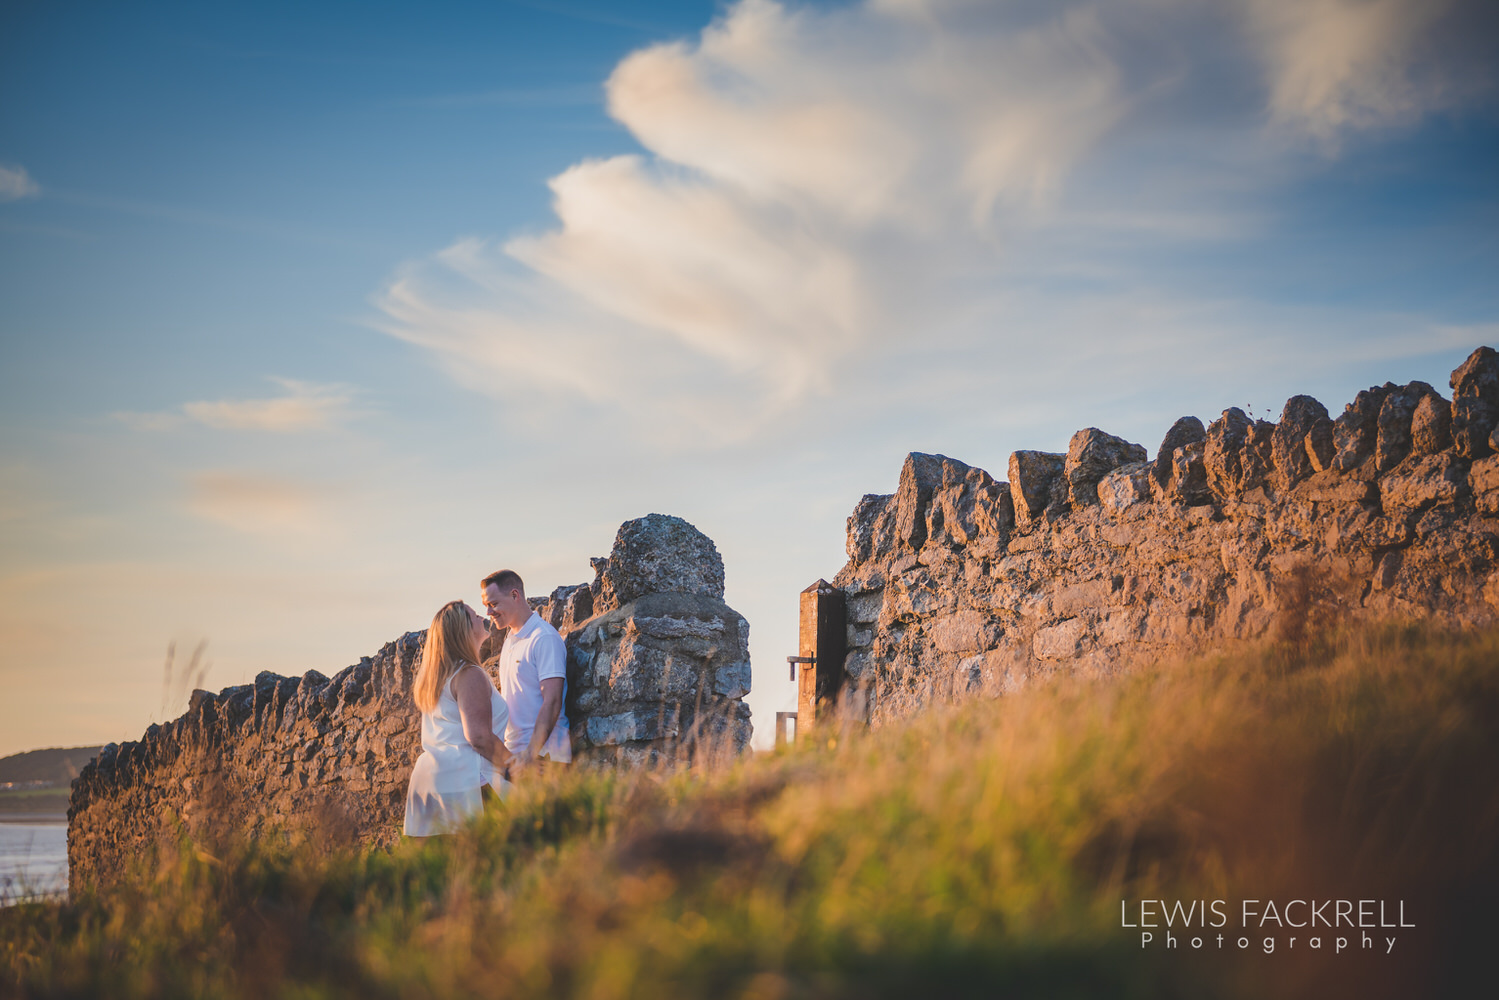 De-courseys-wedding-pre-wedding-photoshoot-session-Cardiff-wedding-photographer-Lewis-Fackrell-photography